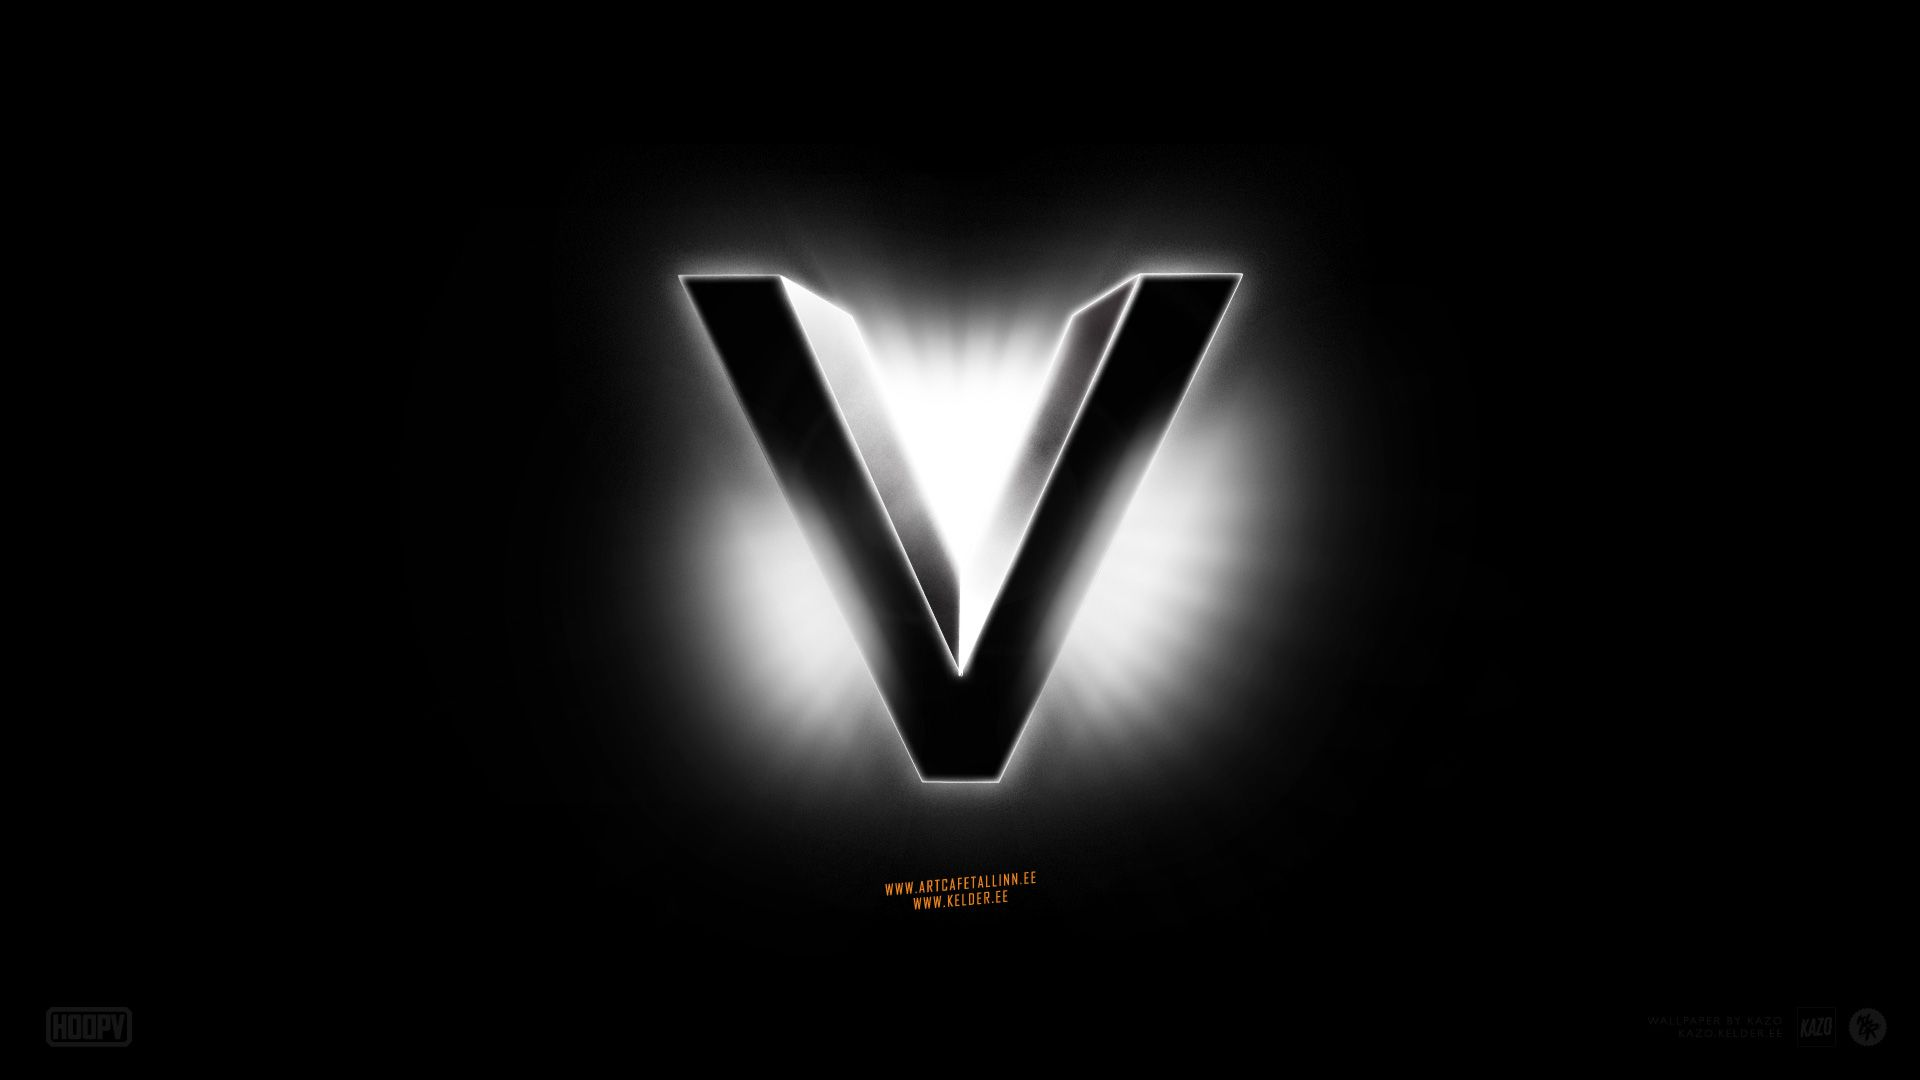 You Can Download V Alphabet Hd Wallpapers Here In High Resolution